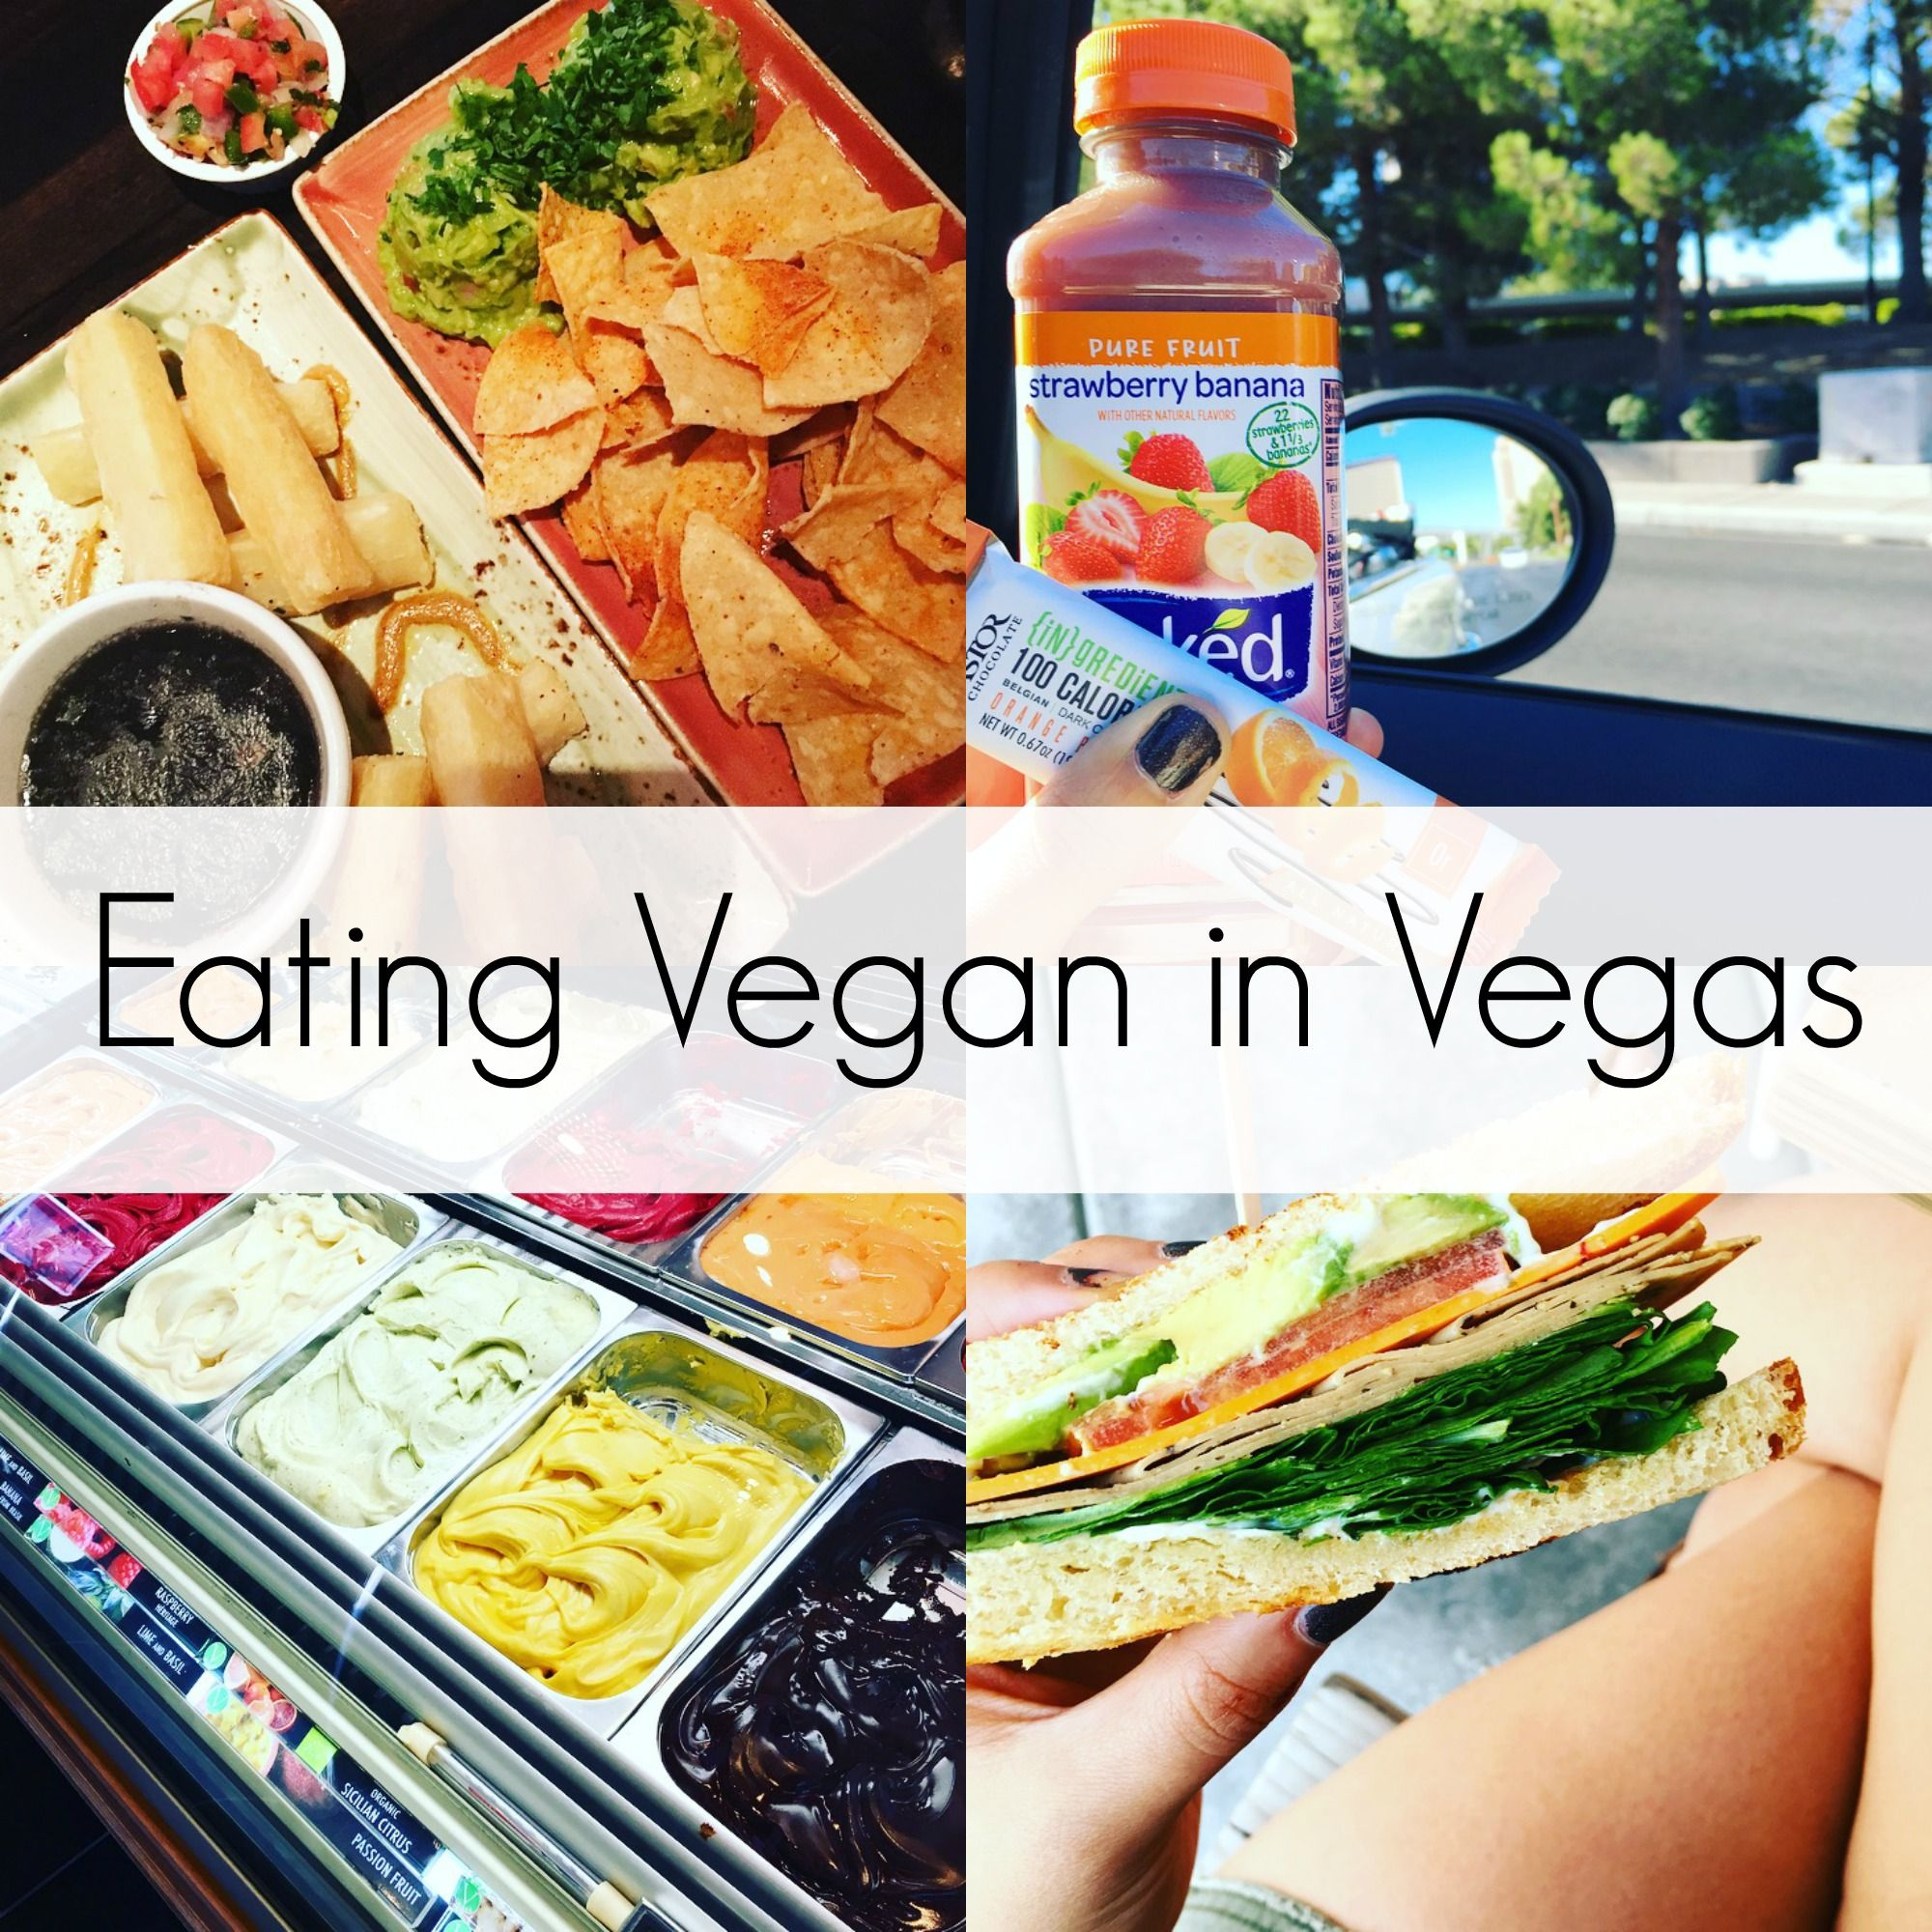 Lol Good To Know Never Know If Vegas Is In The Near Future Learnsomethingnew Everyday Vegas Food Las Vegas Food Vegan Eating